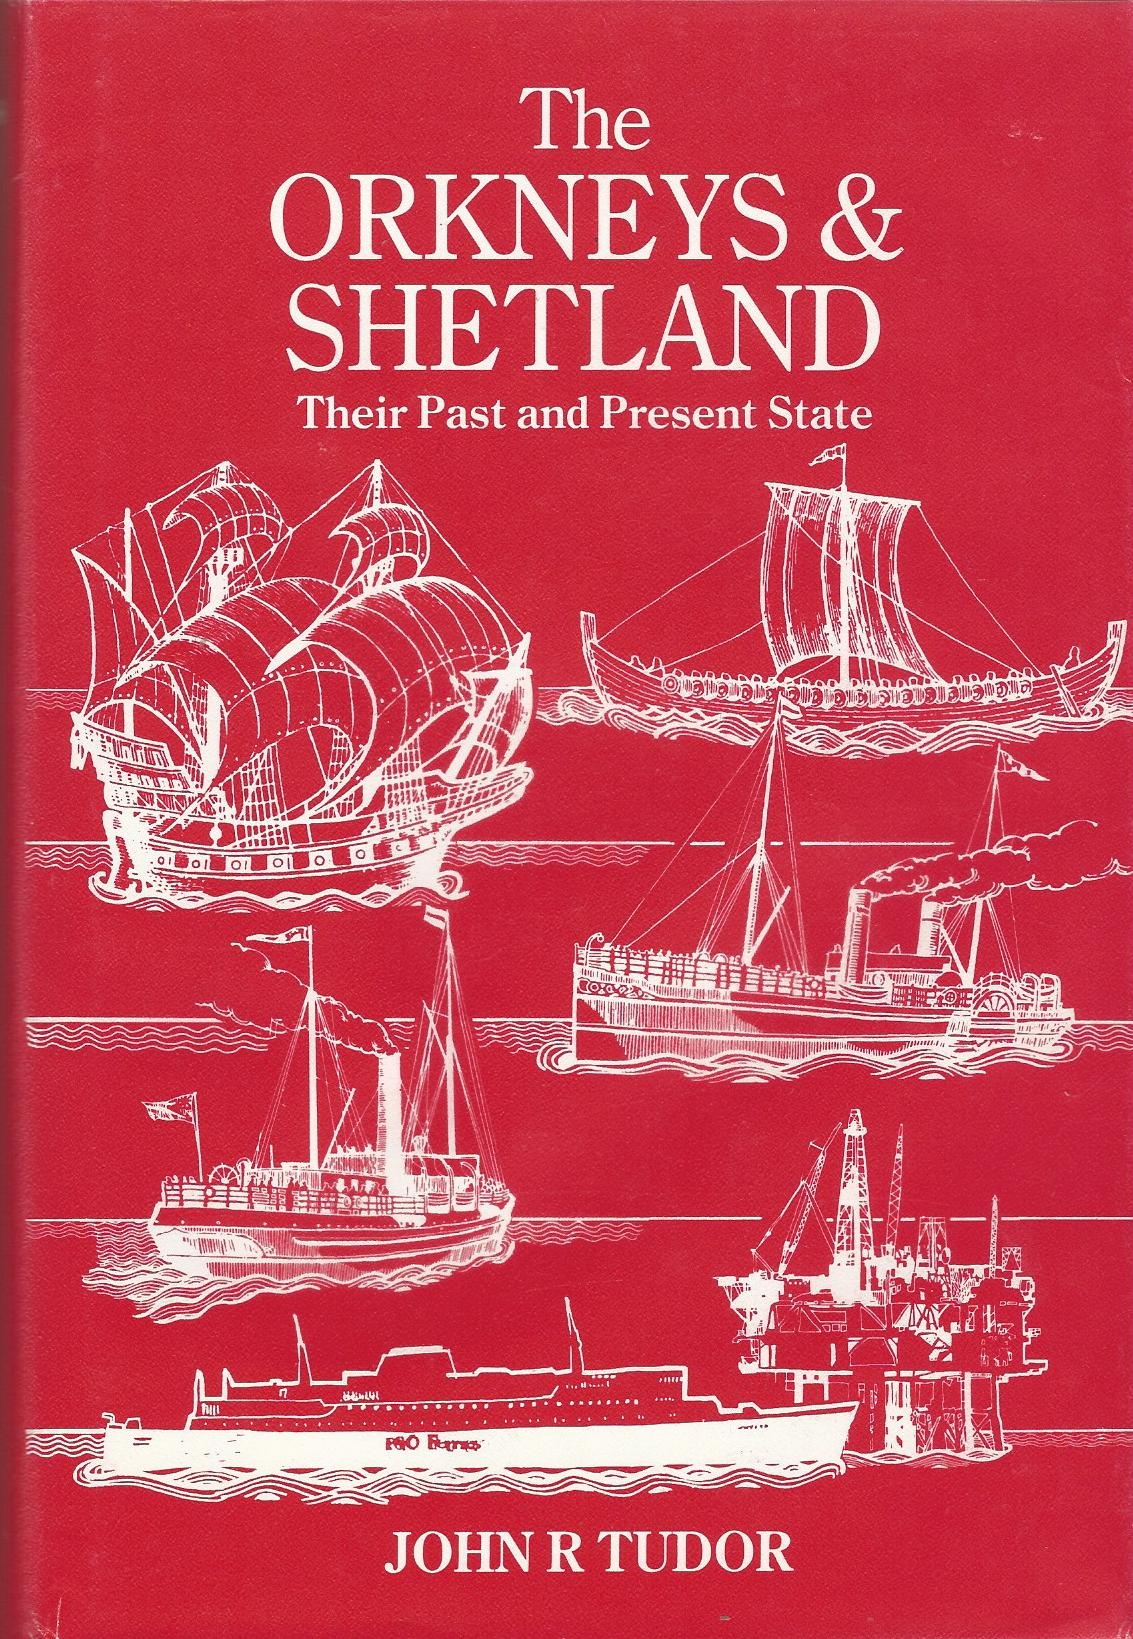 Image for The Orkneys & Shetland: Their Past and Present State.